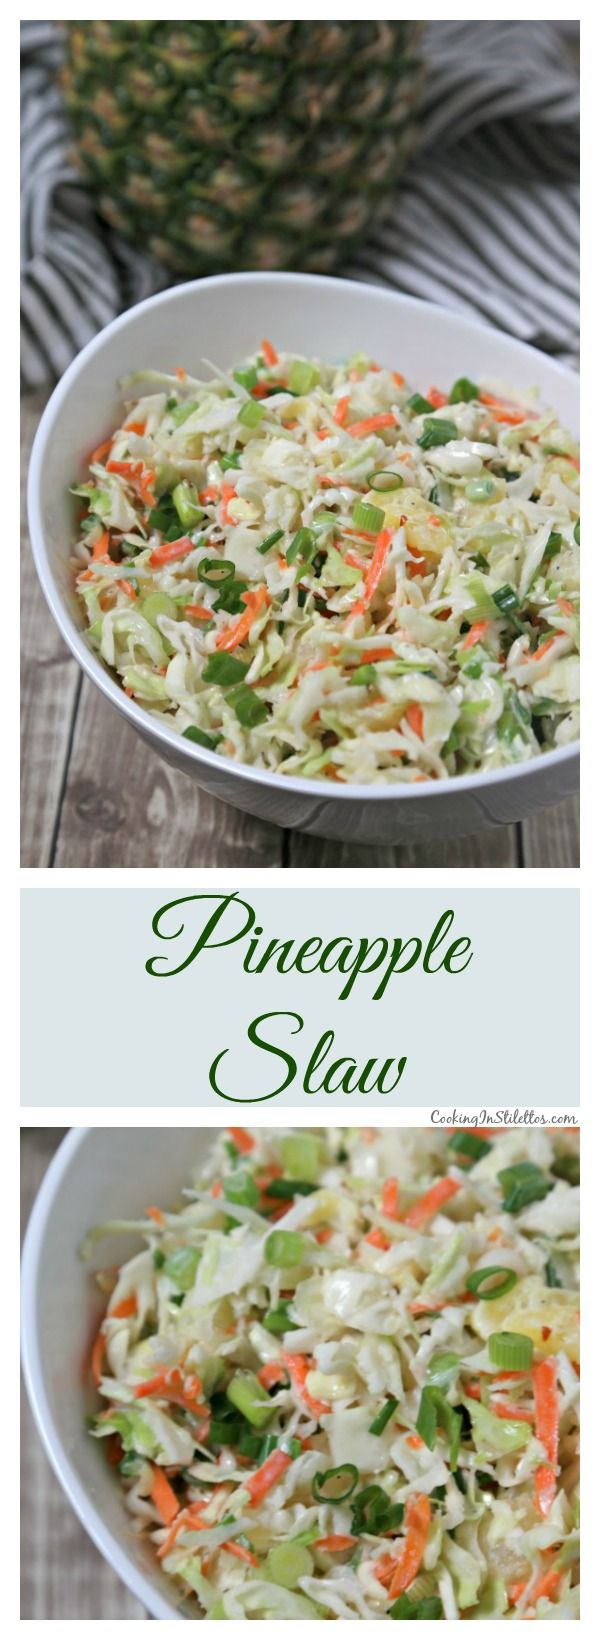 This easy Pineapple Slaw from CookingInStilettos.com will be a summertime favorite - sweet pineapple, spicy ginger & cabbage are tossed in a light yogurt dressing for the ultimate summer coleslaw | @CookInStilettos ~ http://cookinginstilettos.com